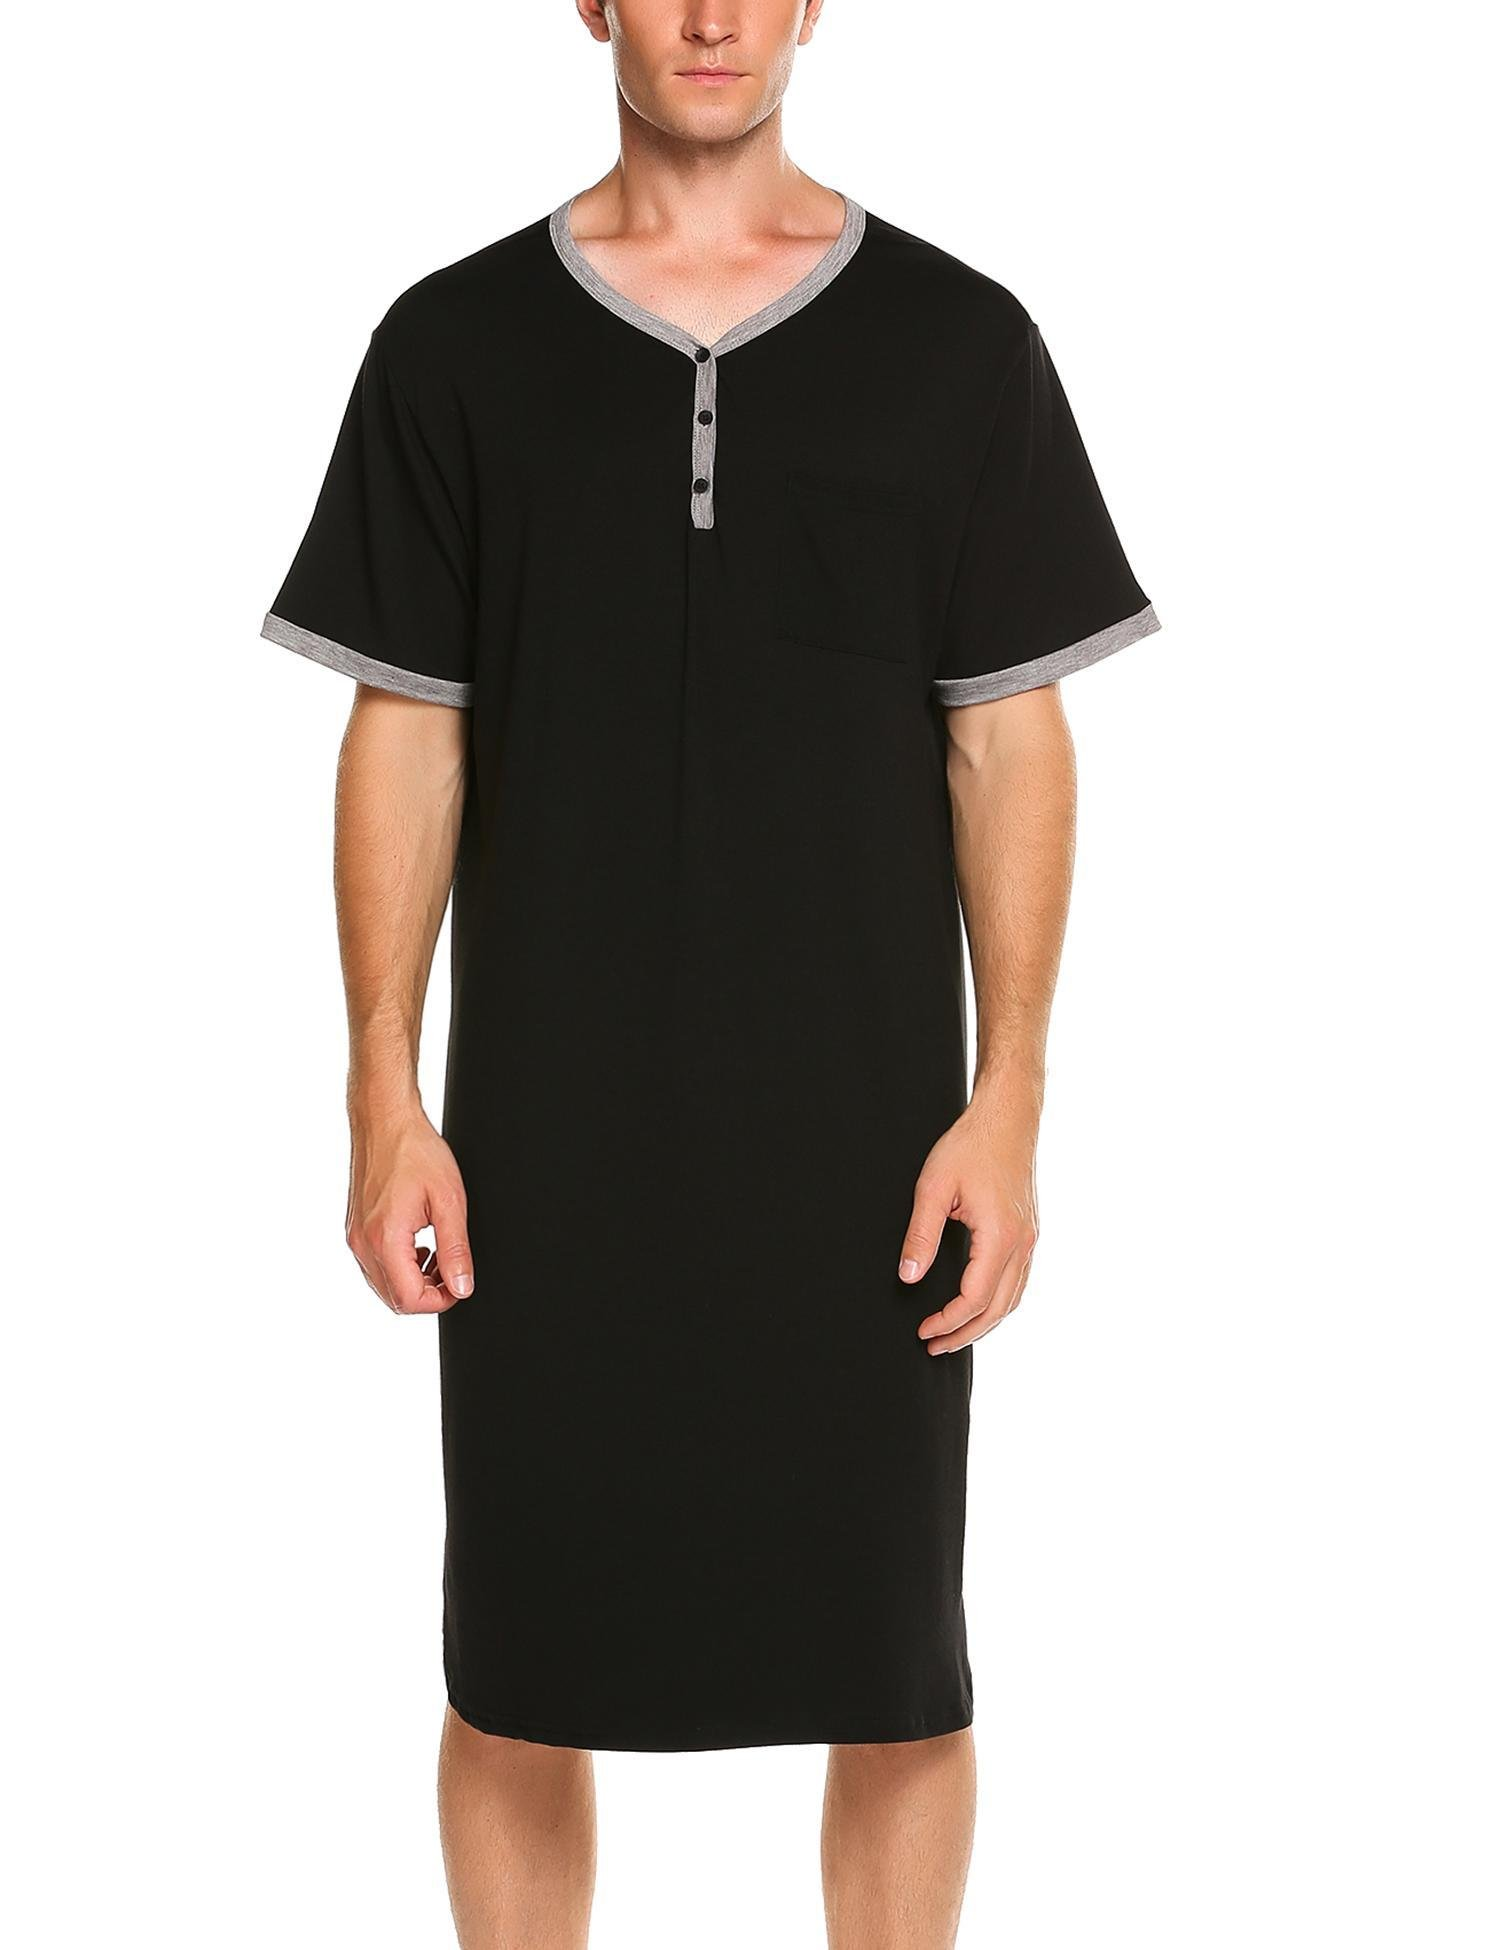 Skylin Plus Size Men's Cotton Knit Nightshirt Sleep Shirt Comfort Sleepwear Loungewear (Black, XL)